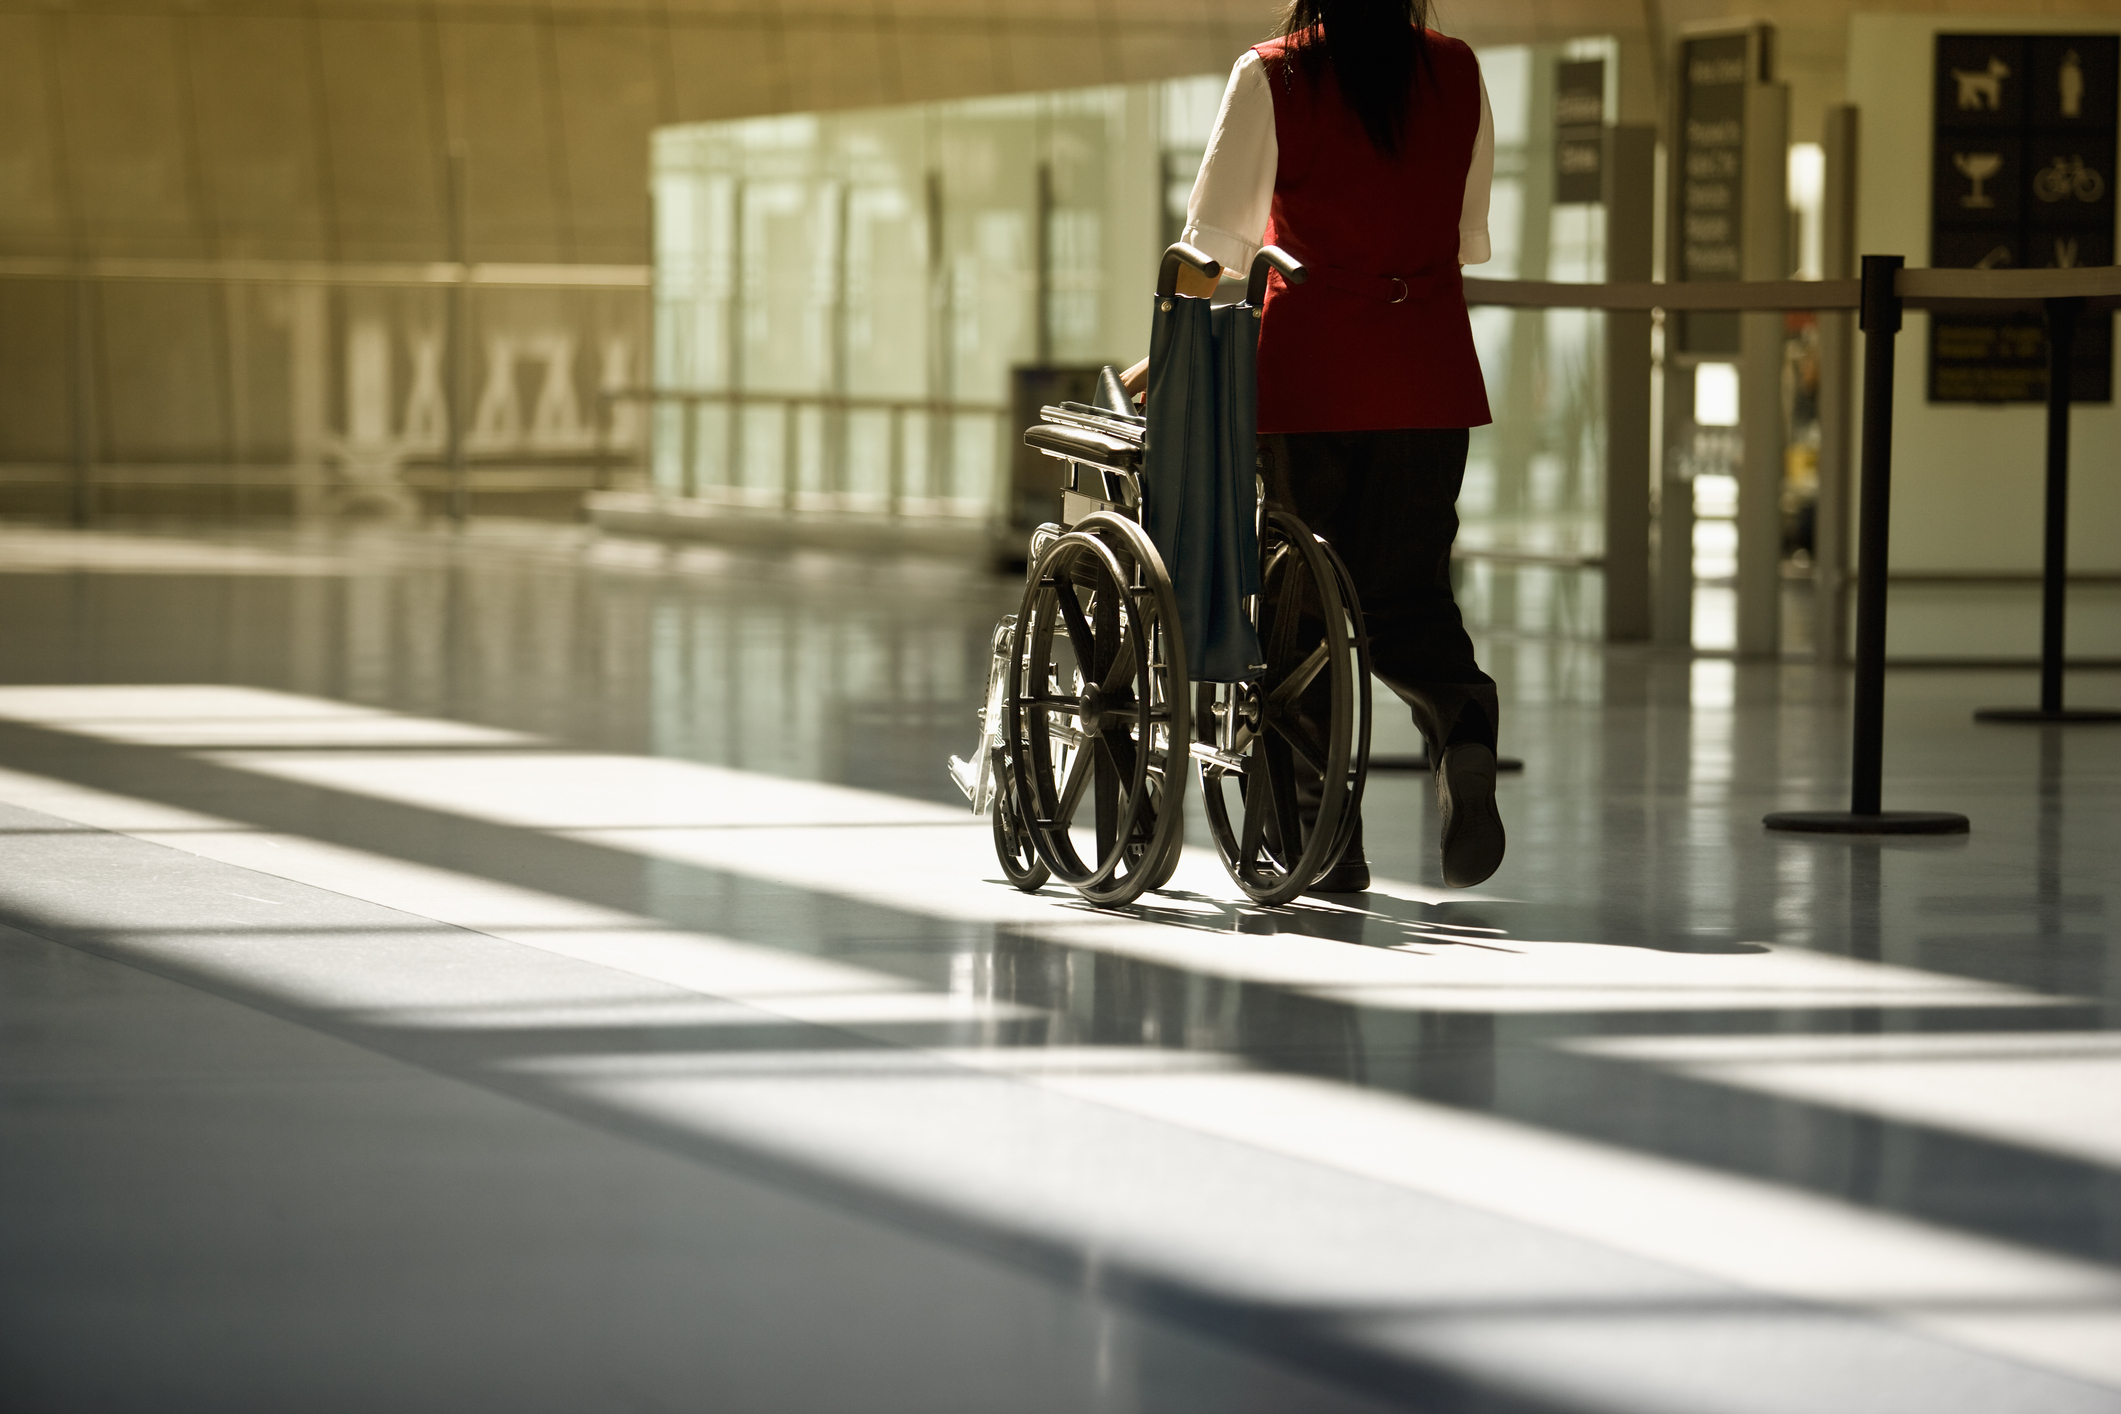 UK airports need to do a lot better when it comes to assistance for travellers with disabilities